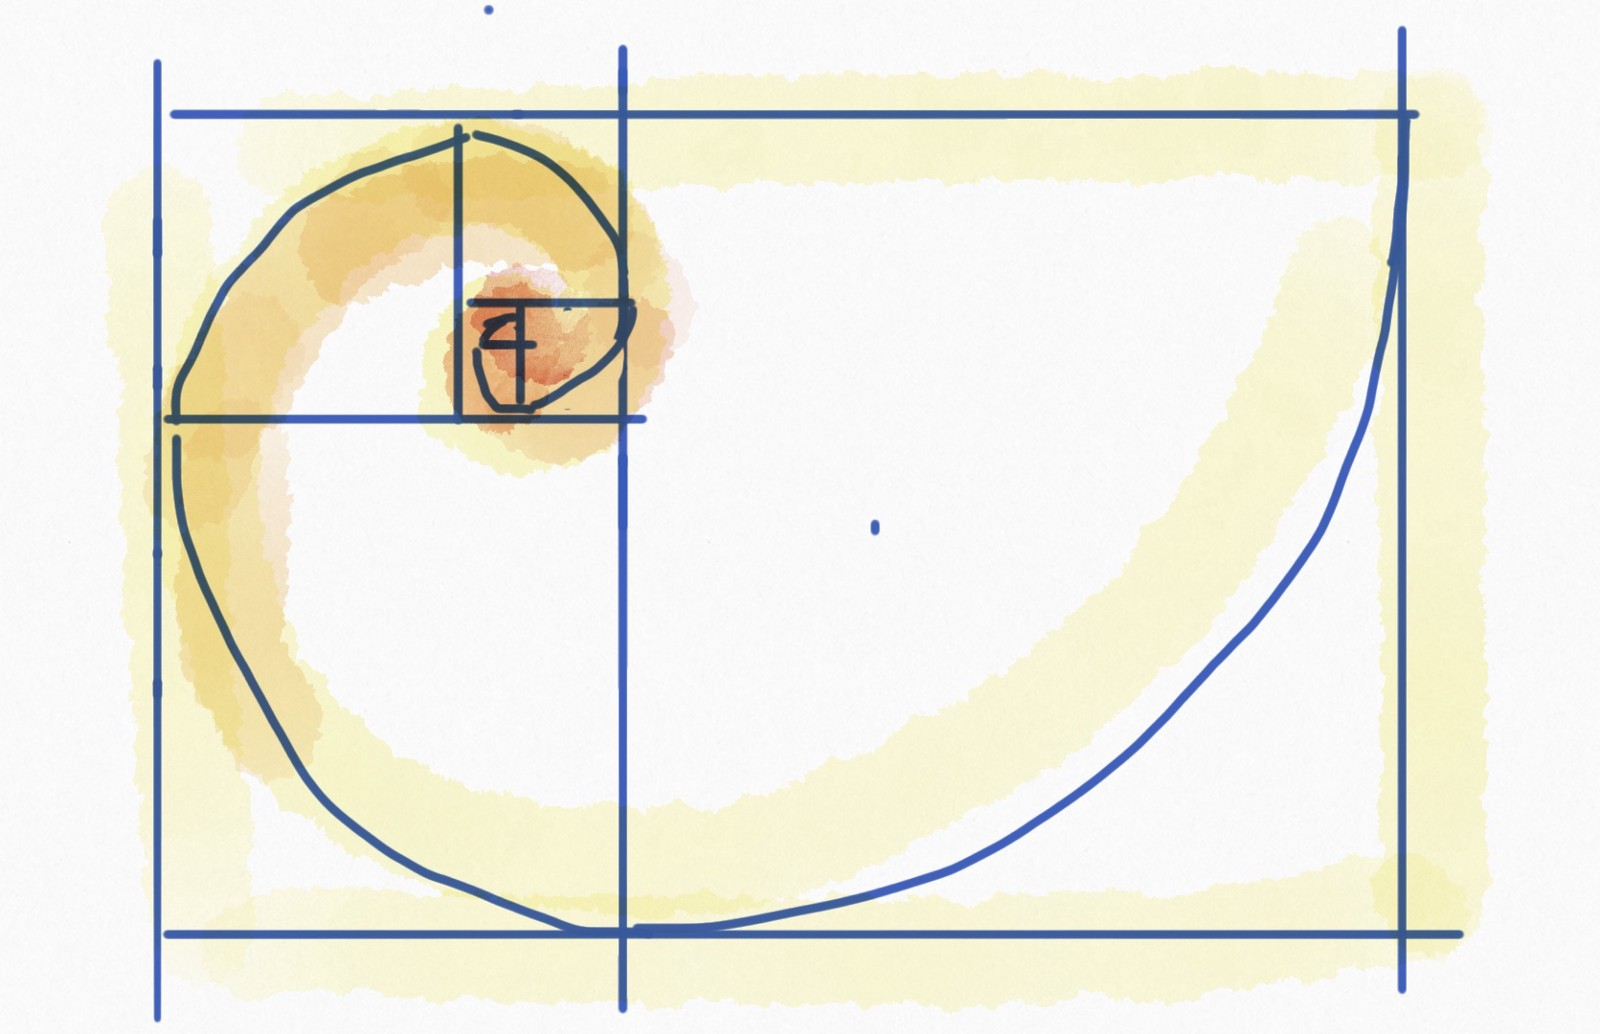 hight resolution of golden ratio in layout design